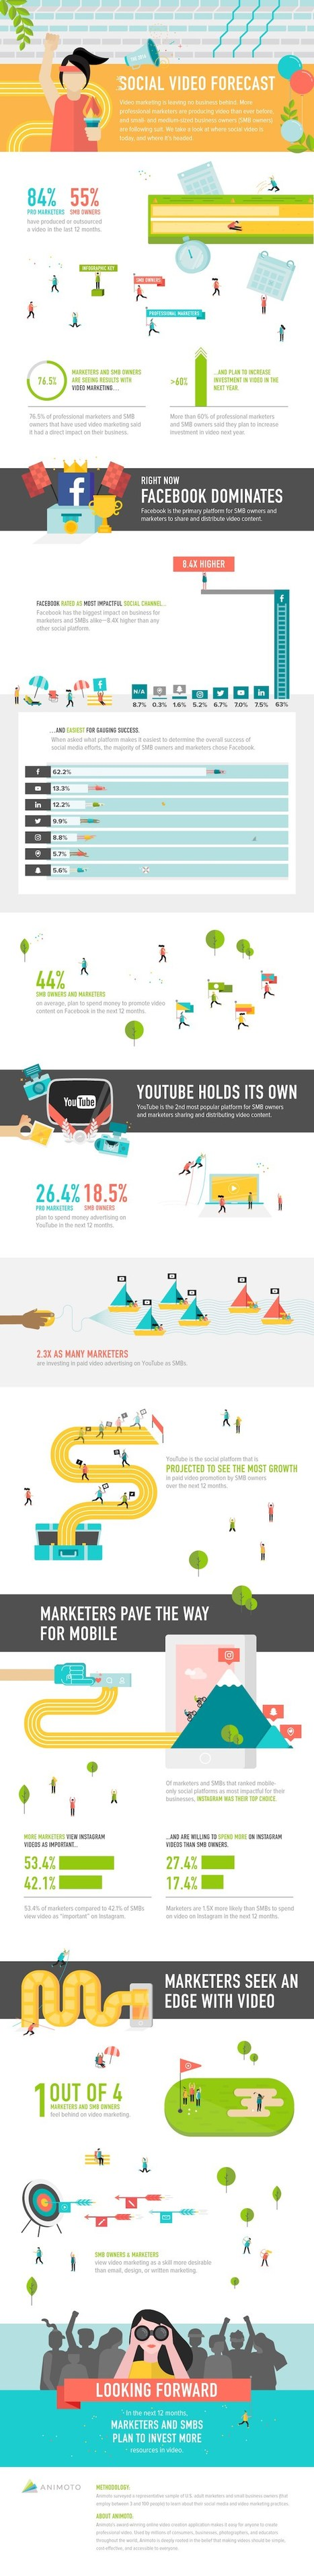 How Brands and SMBs Are Using Video Marketing [Infographic] | Integrated Brand Communications | Scoop.it